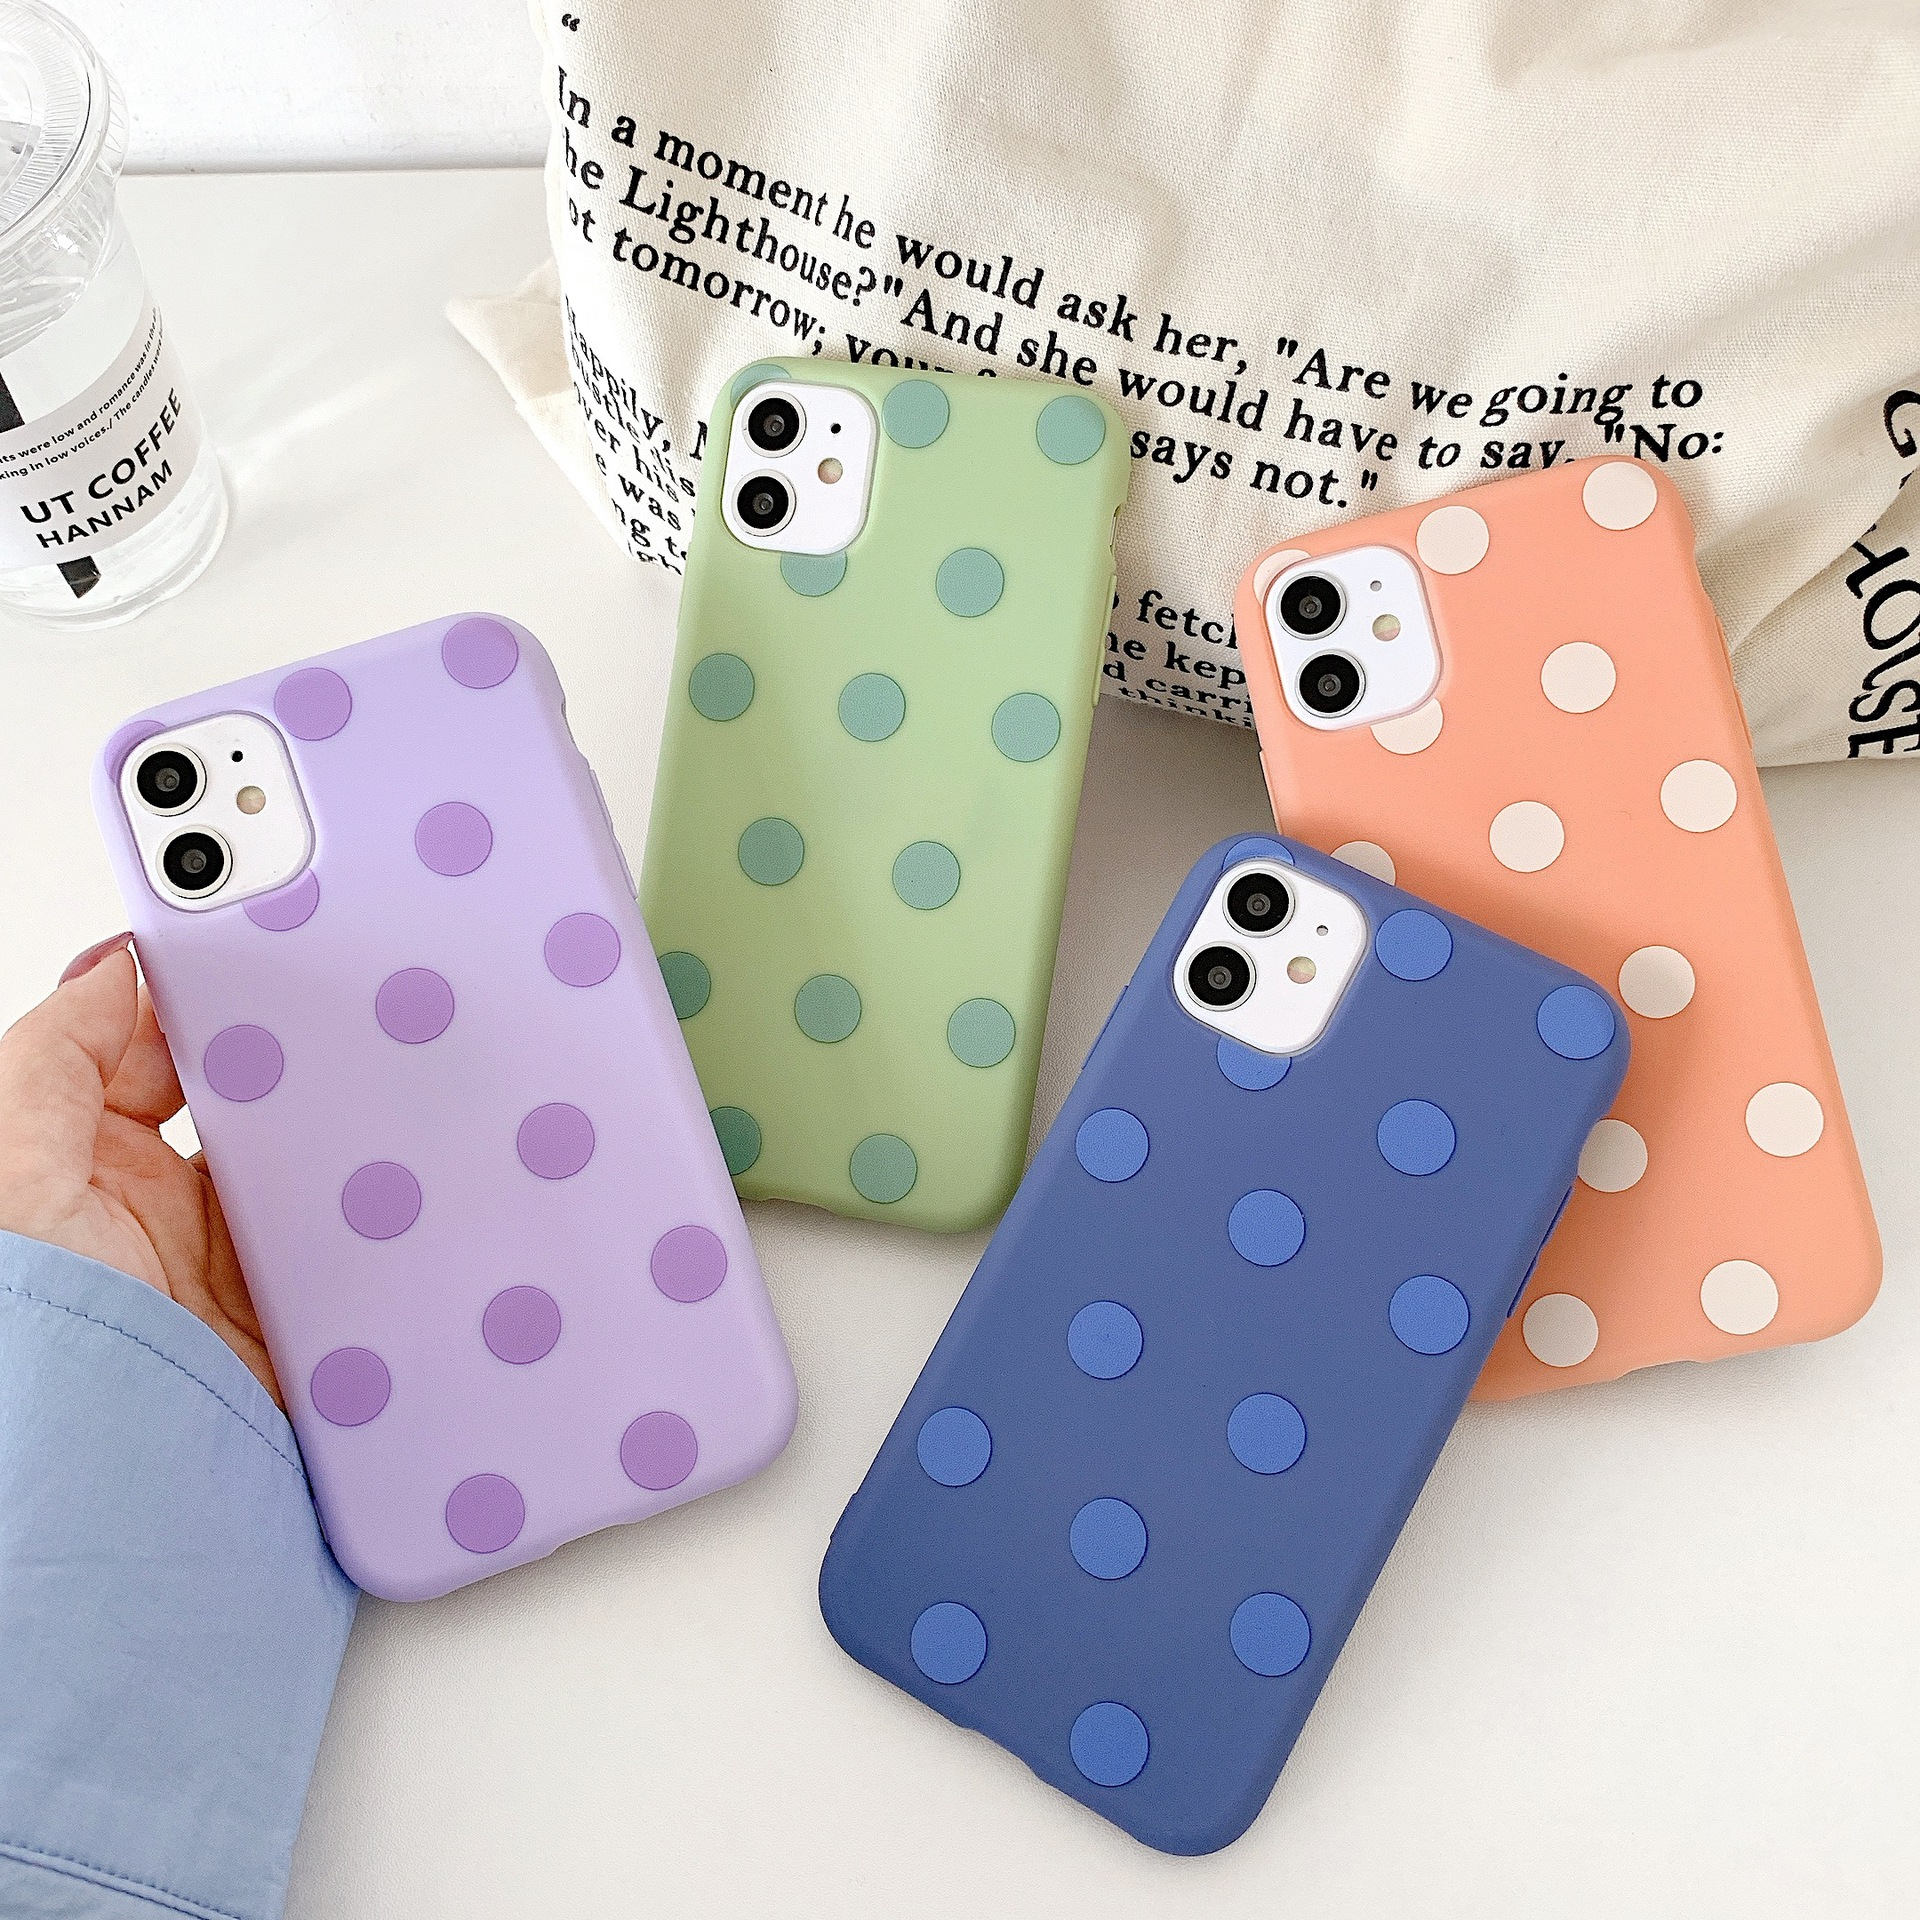 Multicolor Dot Case For iPhone 11 Pro Max SE 2020 X XR XS Max 7 8 Plus Simple Soft Silicone Phone Cover Coque